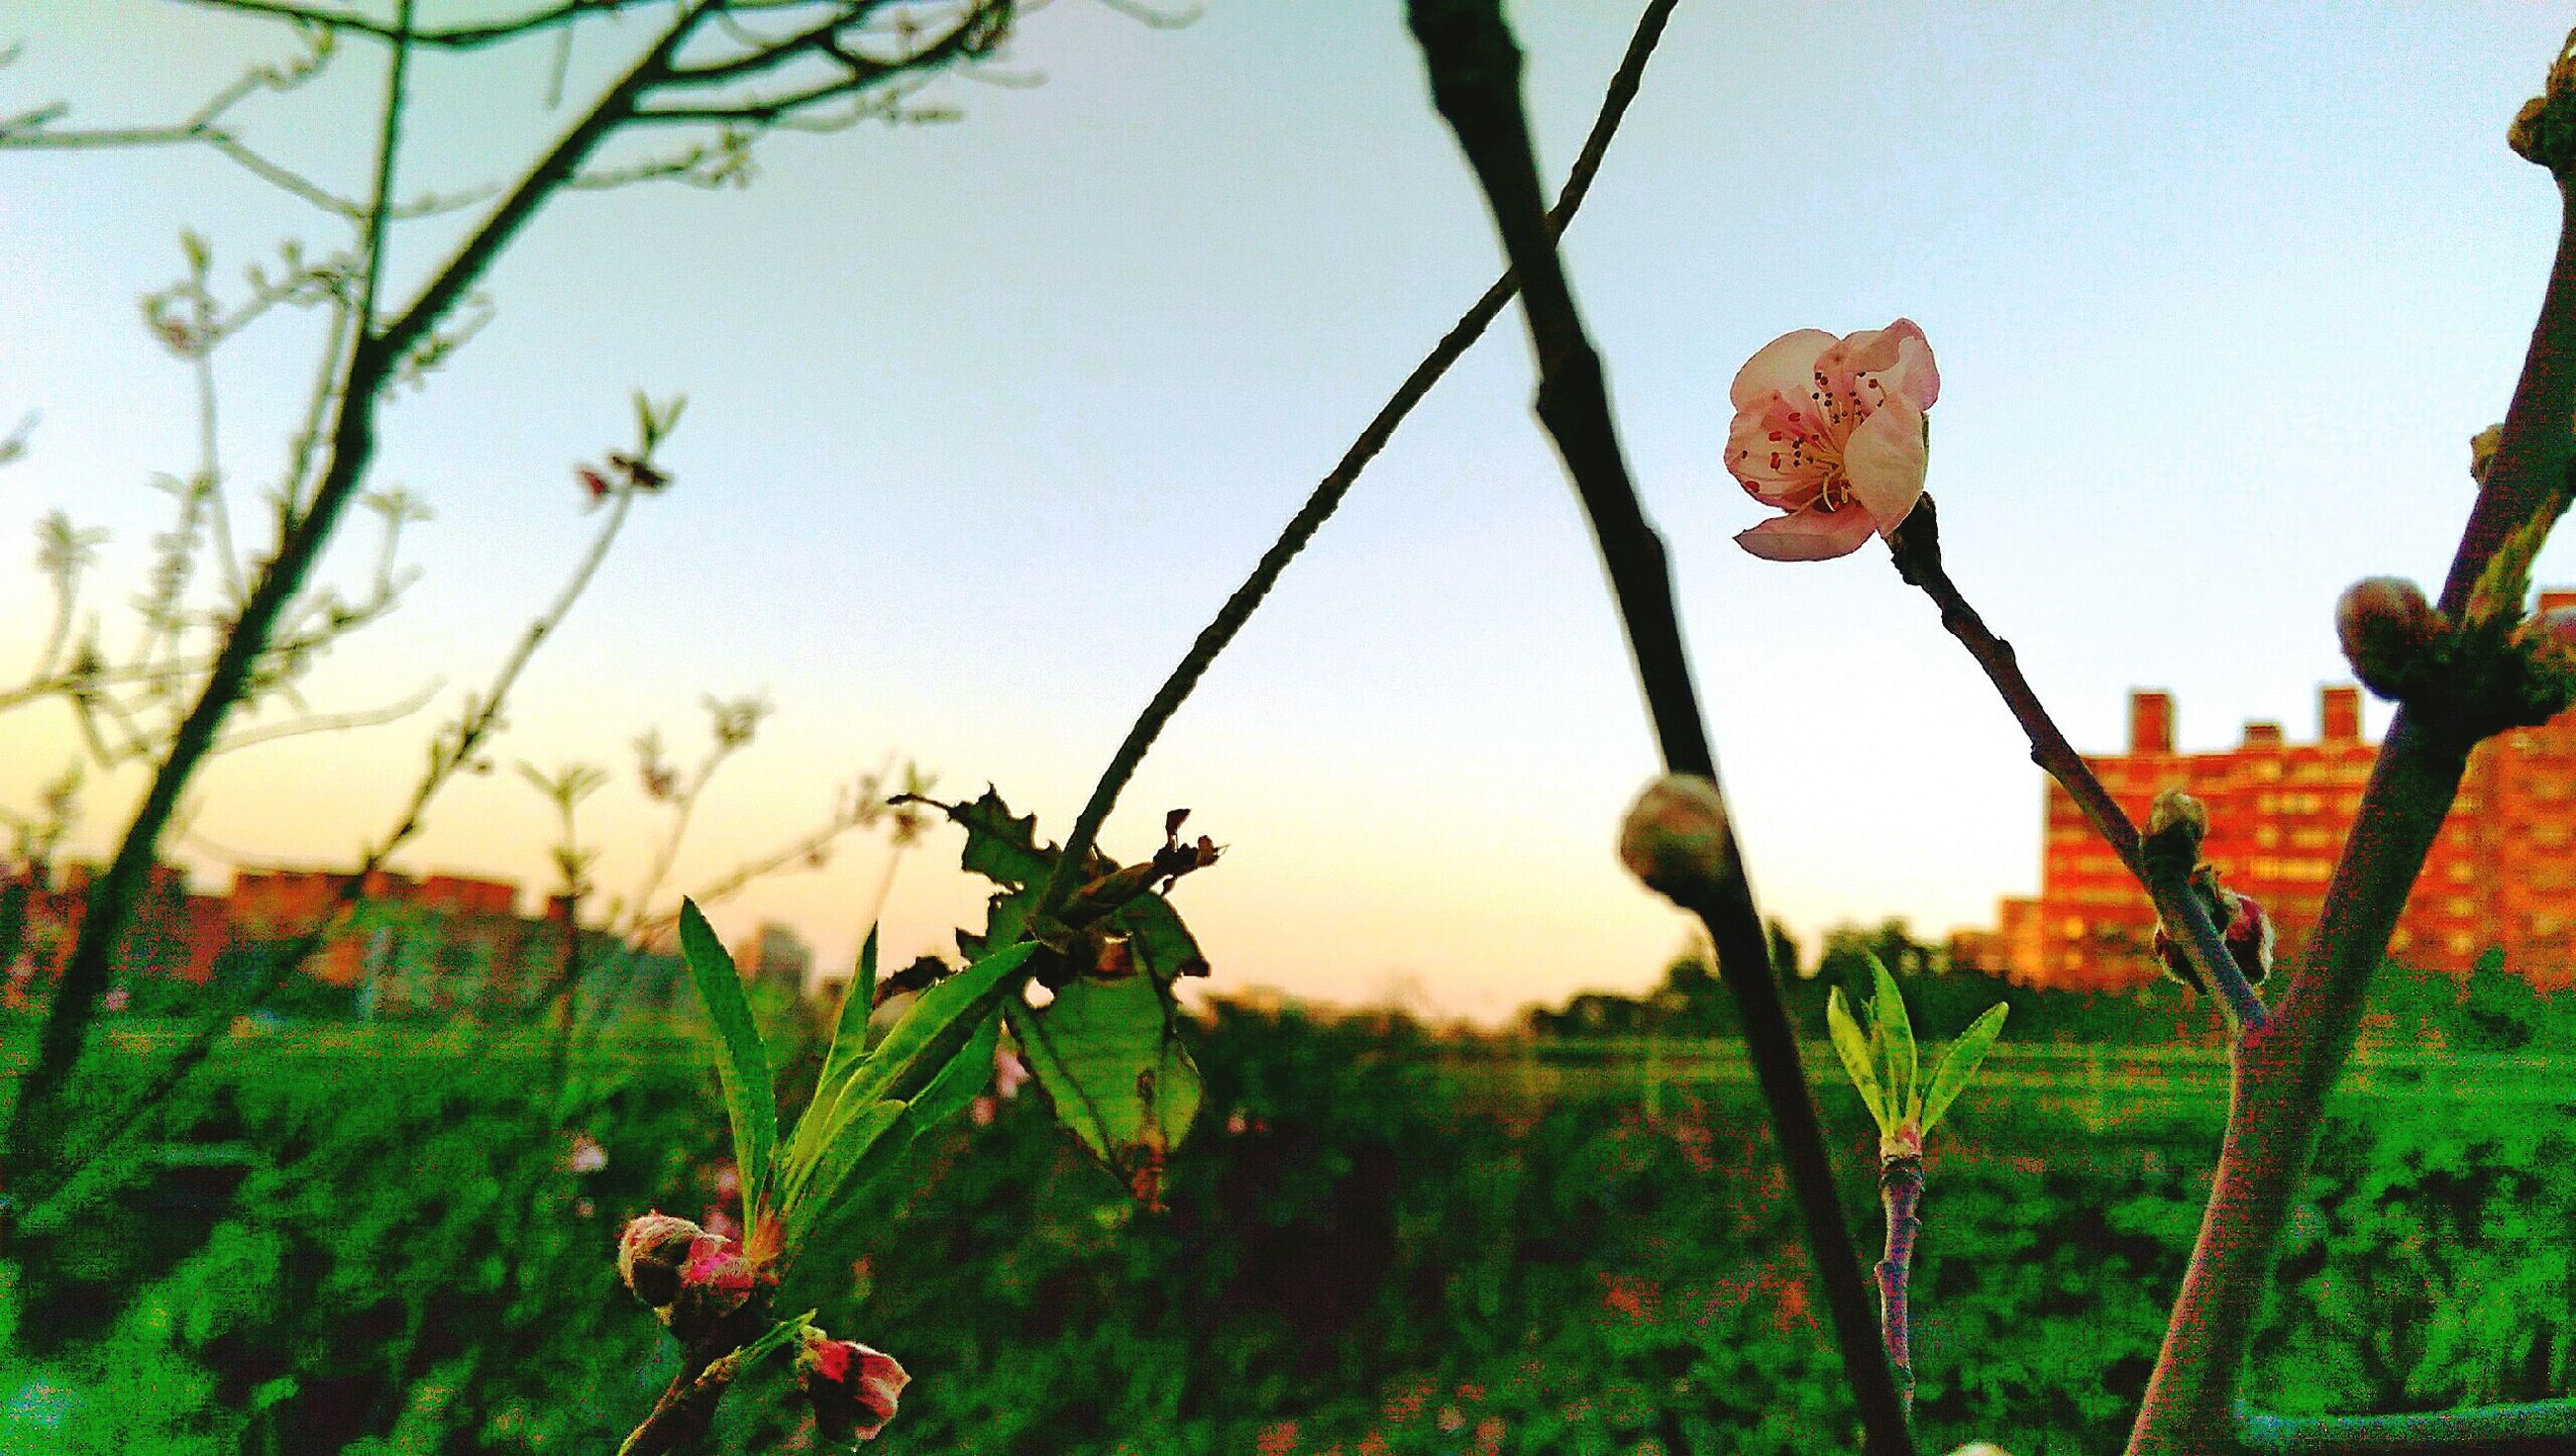 growth, plant, focus on foreground, orange color, nature, clear sky, field, close-up, beauty in nature, red, freshness, stem, leaf, grass, fragility, sunset, flower, tranquility, outdoors, growing